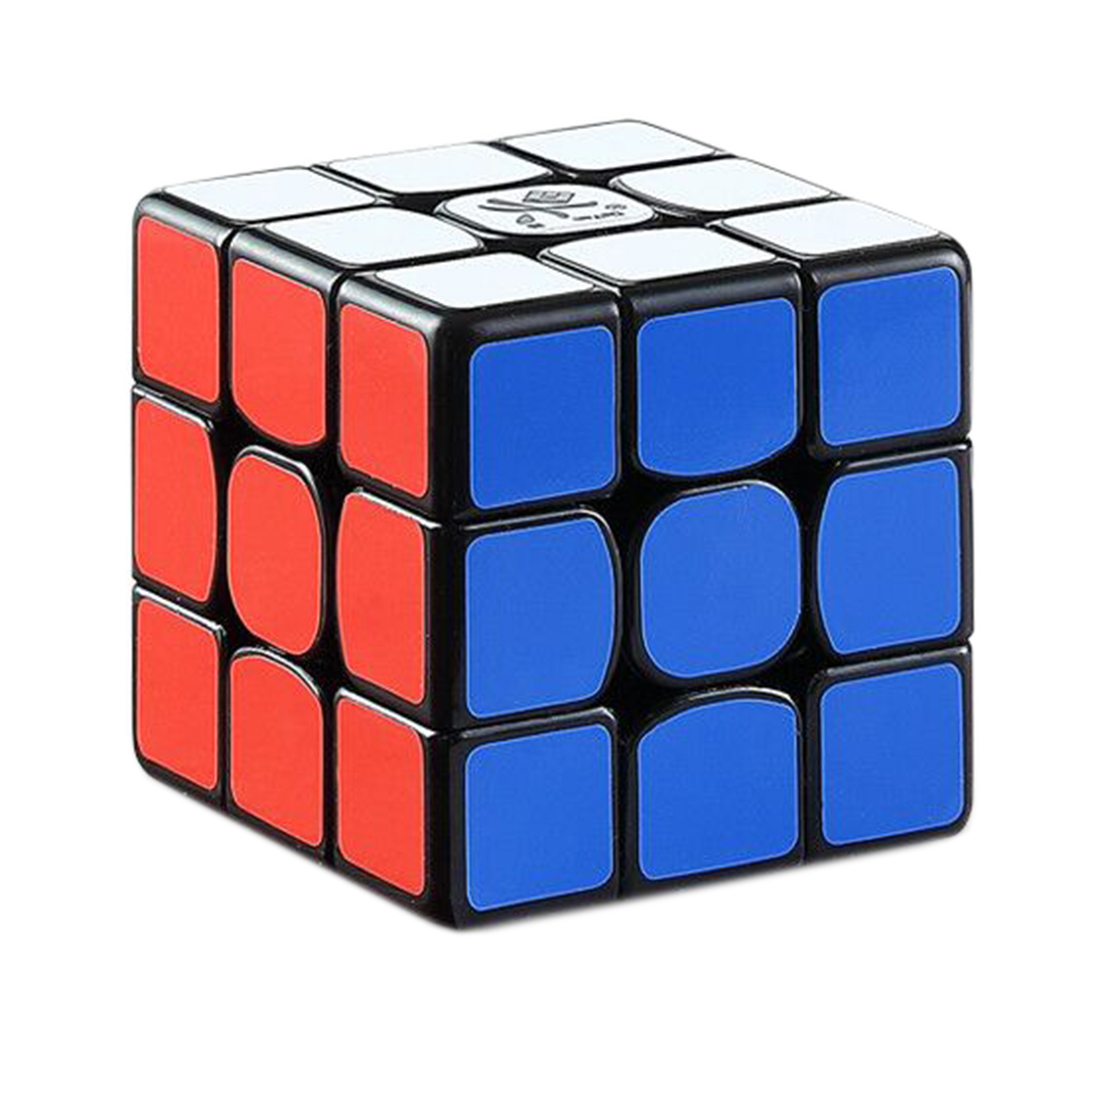 Dayan Zhanchi 2018 Magic Cube 3x3 Speed Puzzle Cube Intelligent Toys for Competition Challenge - 3 ColorsDayan Zhanchi 2018 Magic Cube 3x3 Speed Puzzle Cube Intelligent Toys for Competition Challenge - 3 Colors